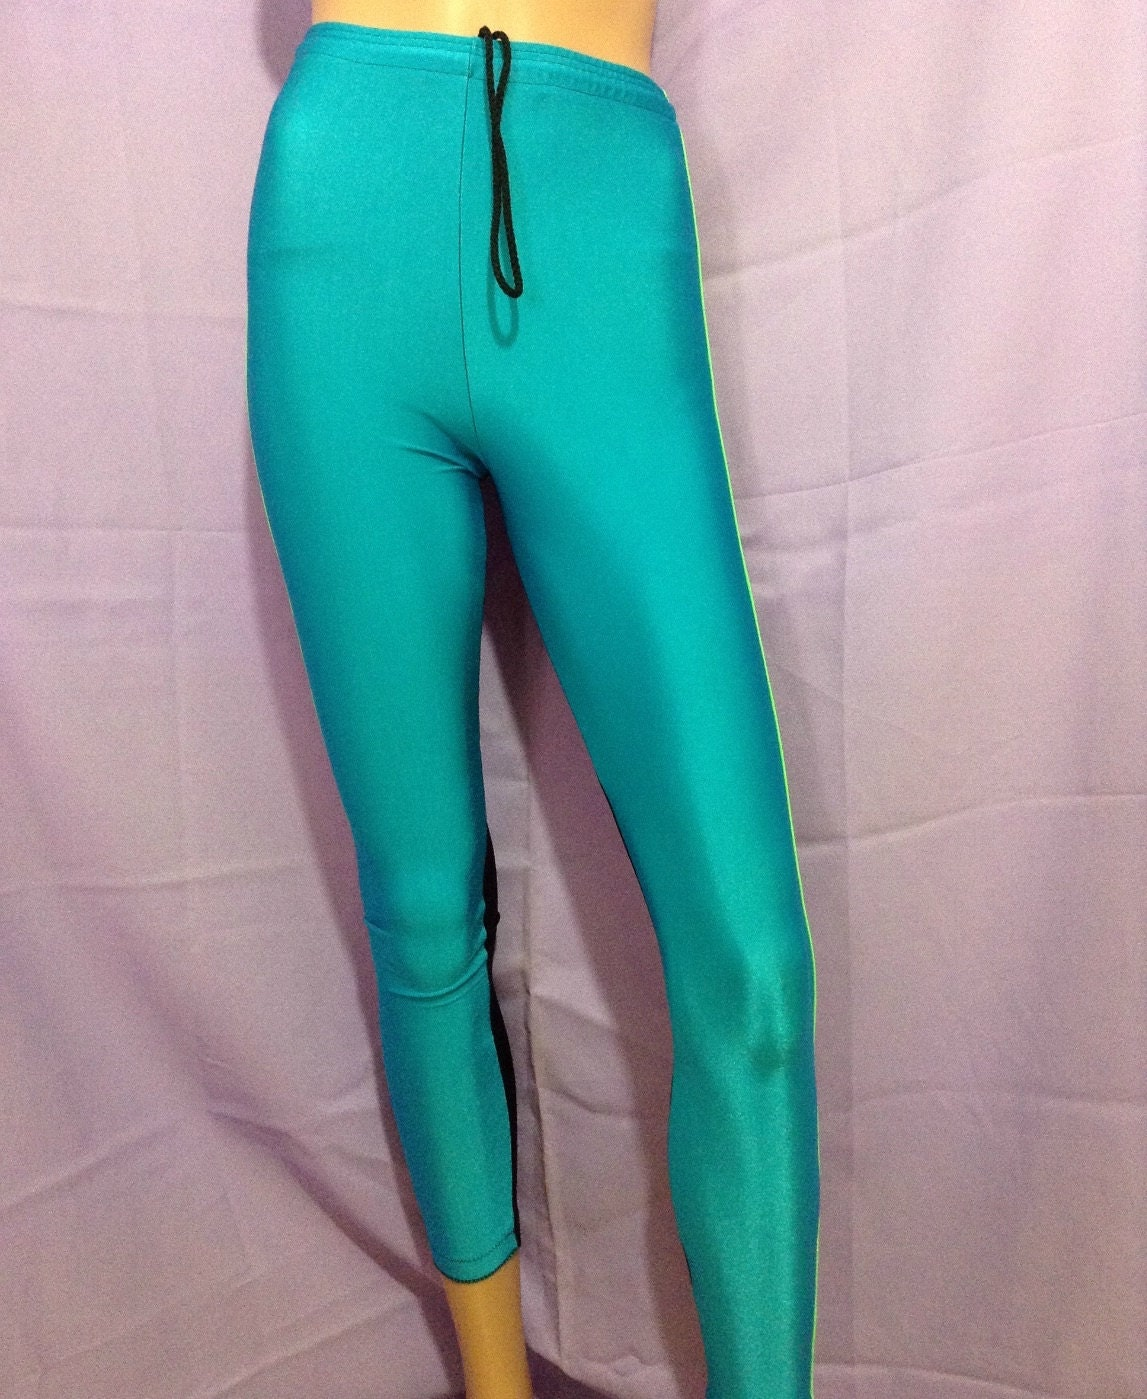 Vintage 80s leggings turquoise and black size by SilkySuspect